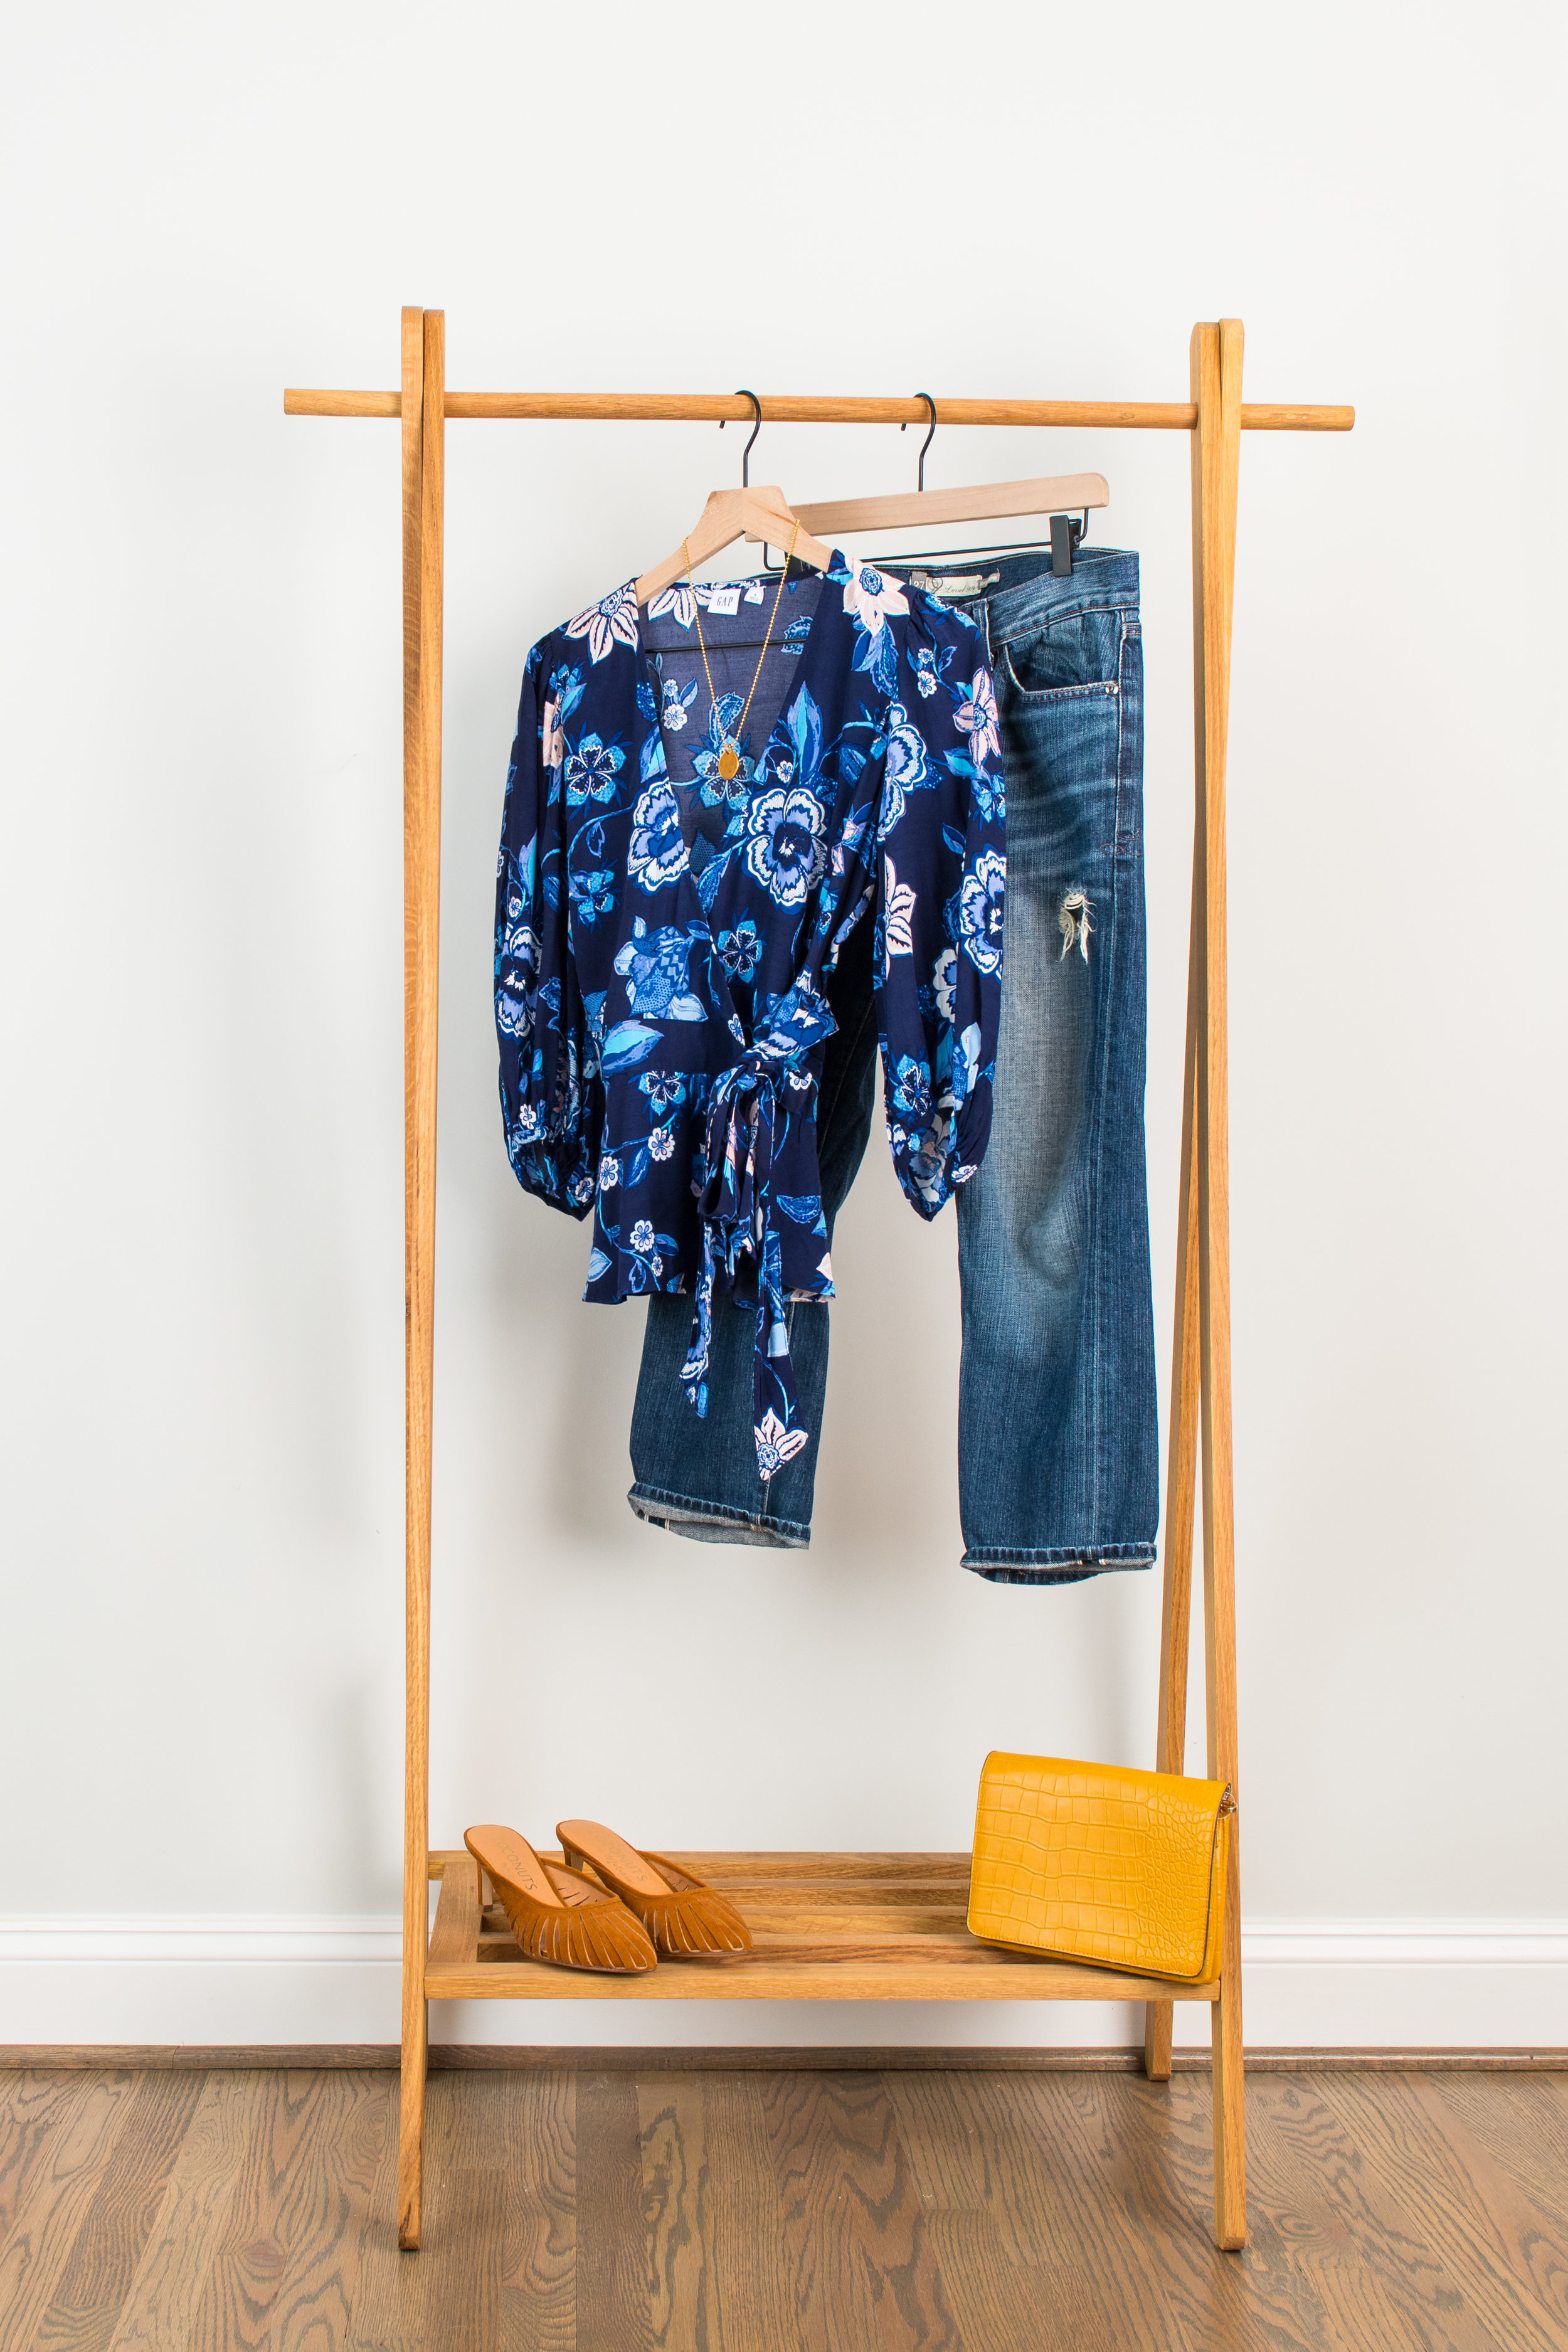 Floraly Fun - Wear to: Meeting a friend or date nightFloral Blouse: 1 // 2 // 3Distressed Denim: 1 // 2 // 3Mules: 1 // 2 // 3Necklace: 1 // 2 // 3Oversized Clutch : 1 // 2 // 3